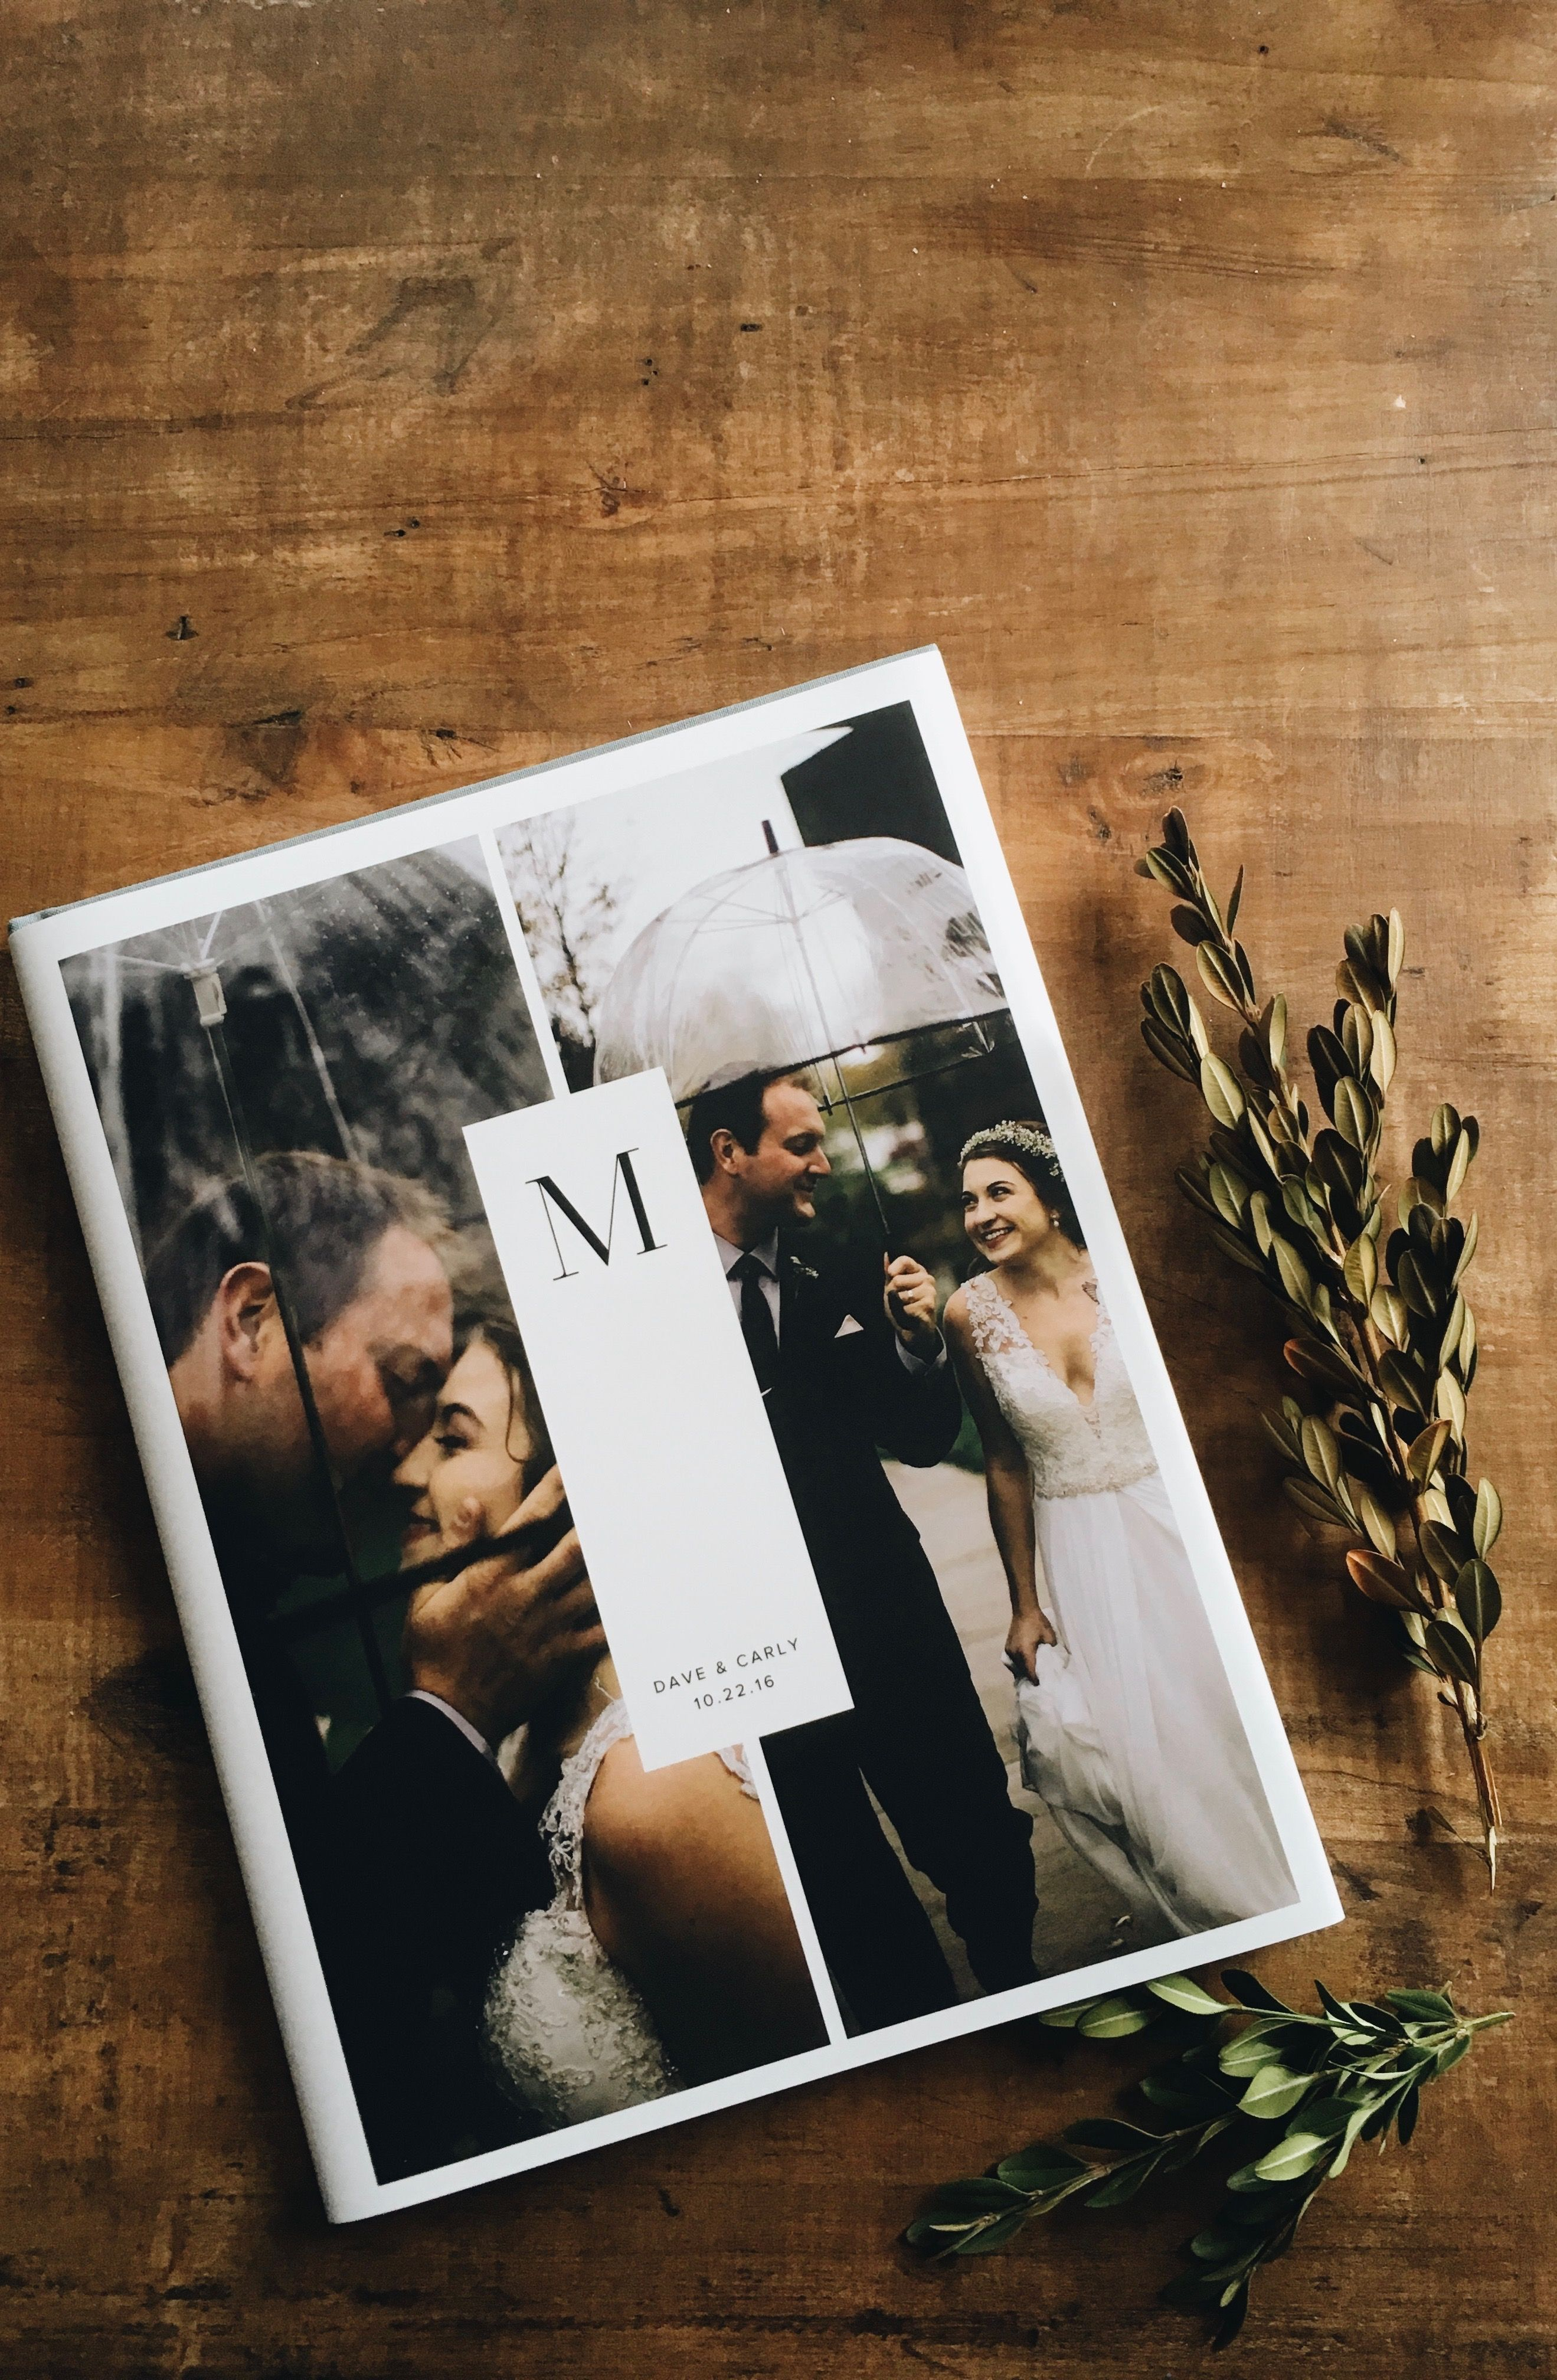 Hardcover photo book in sam and geoff wedding  pinterest nunt idei also rh ro